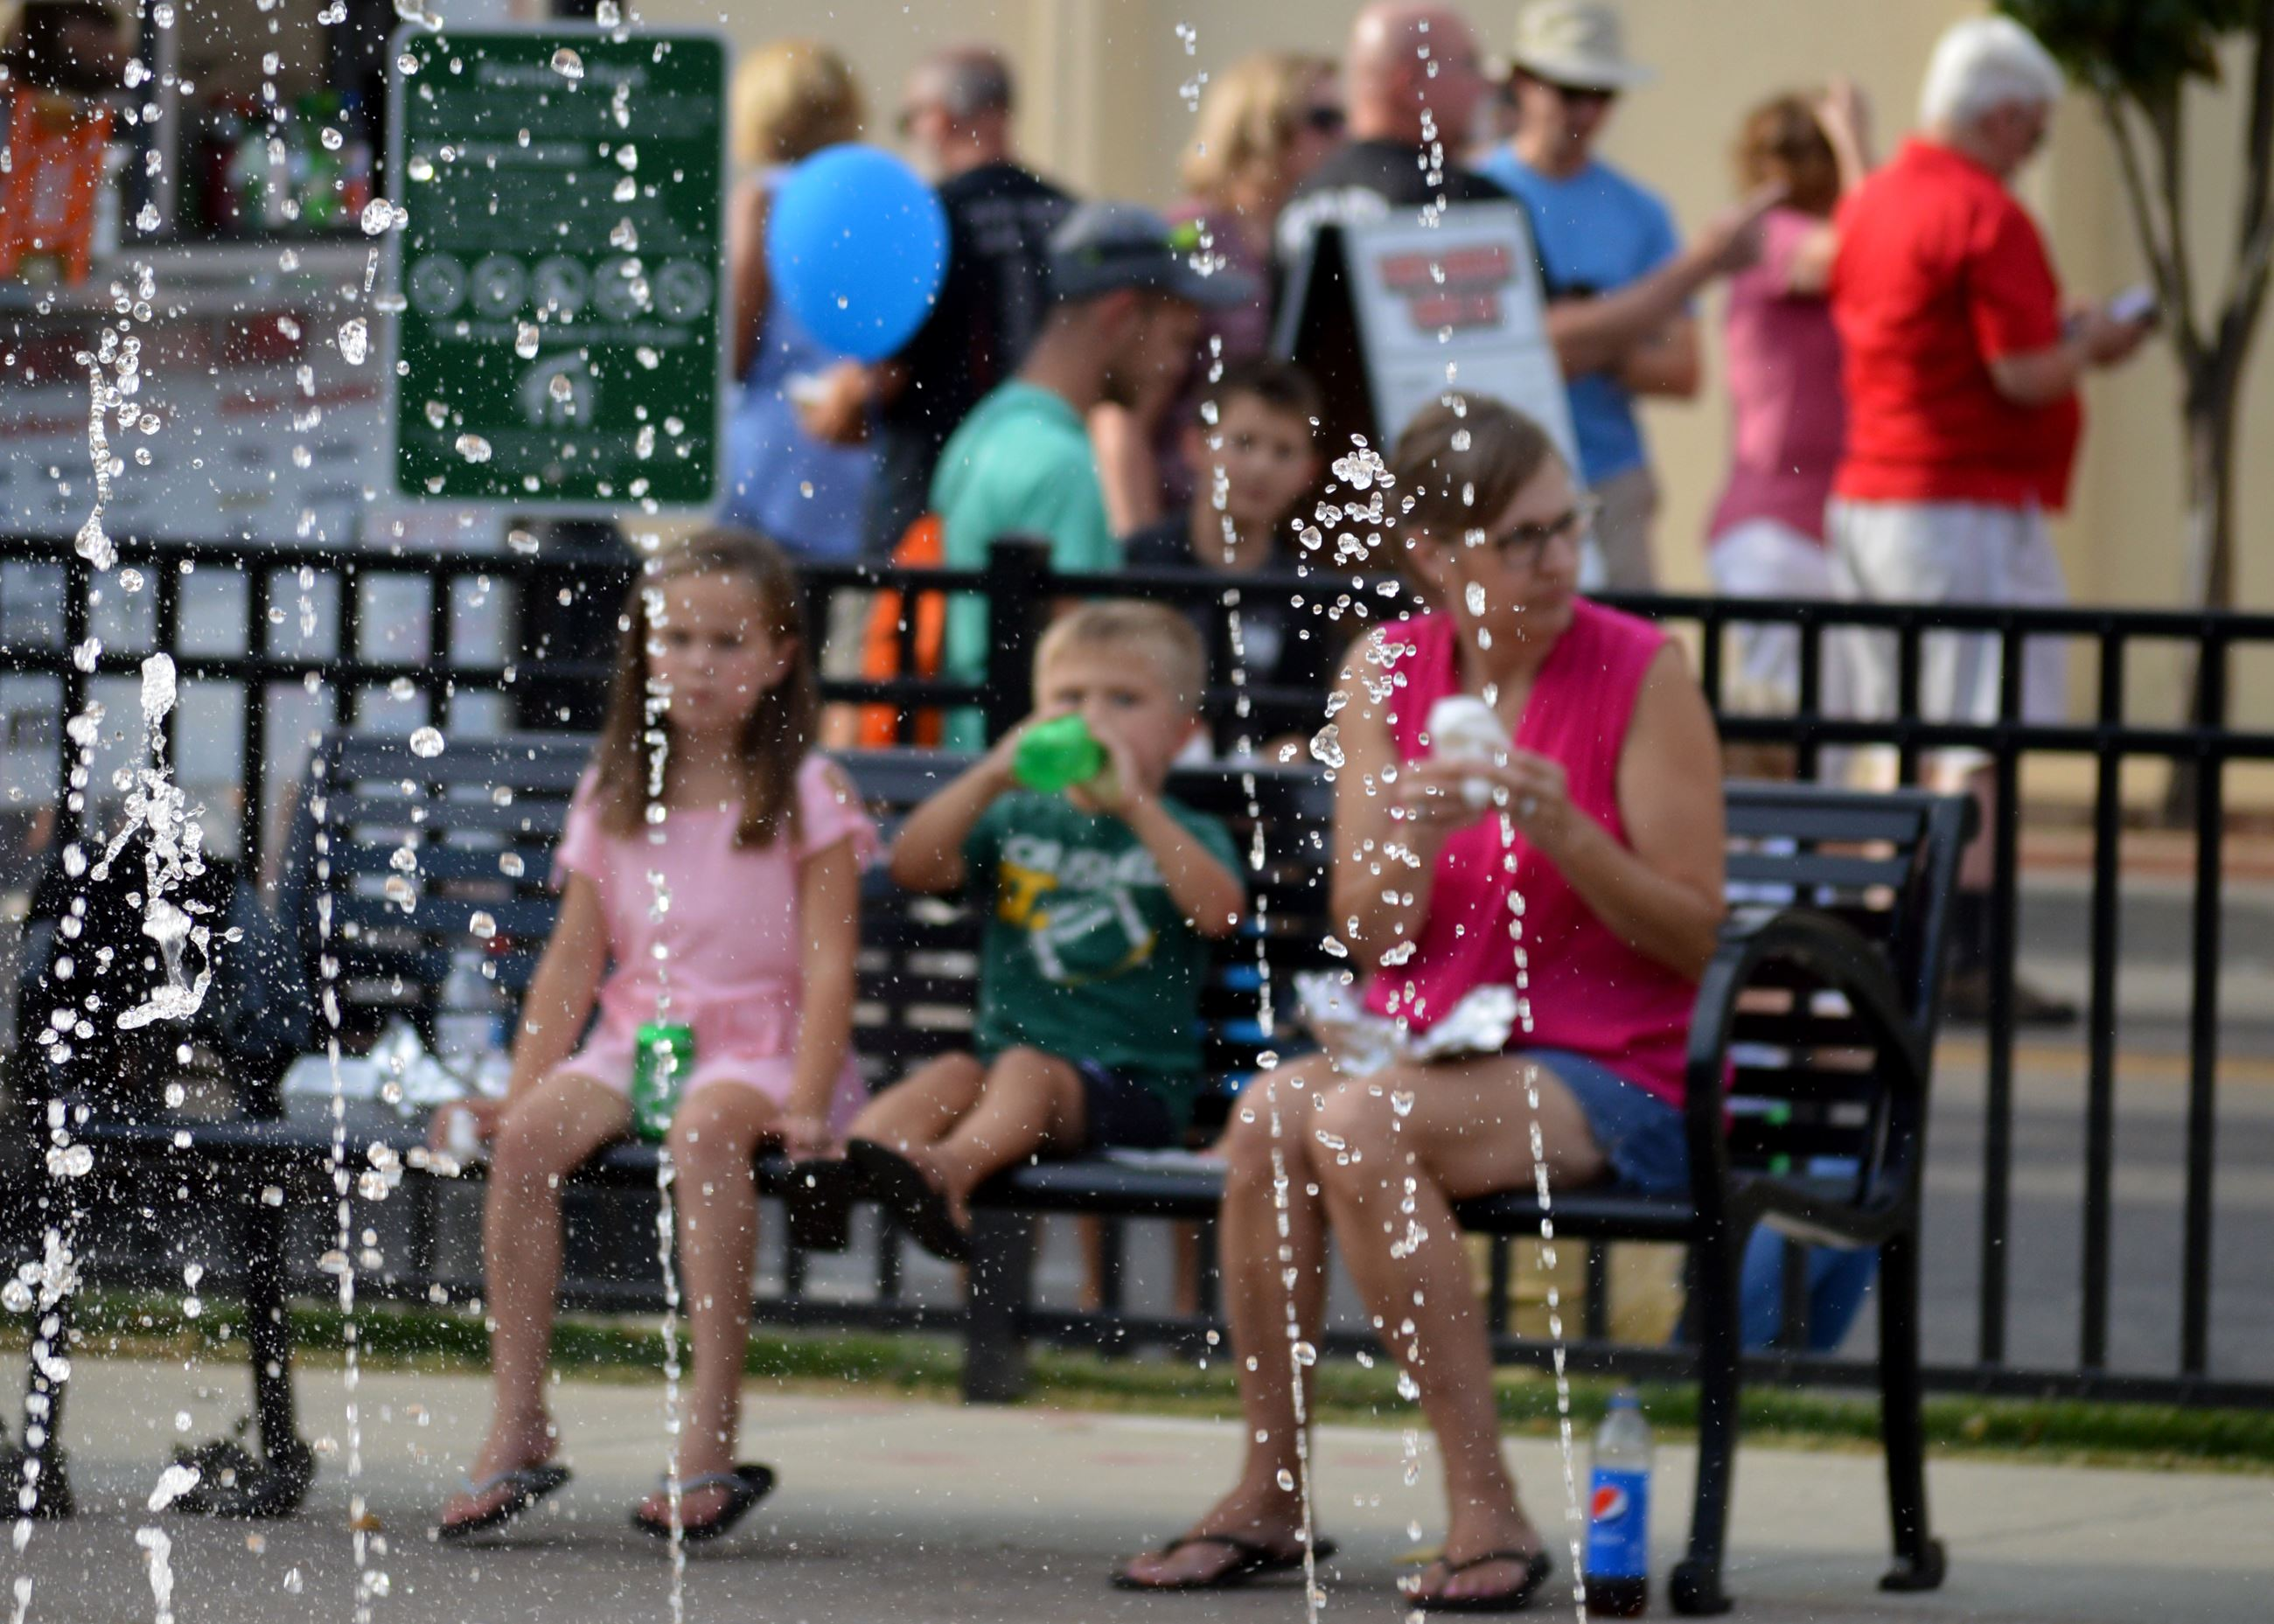 Family sitting on bench near splash pad fountain